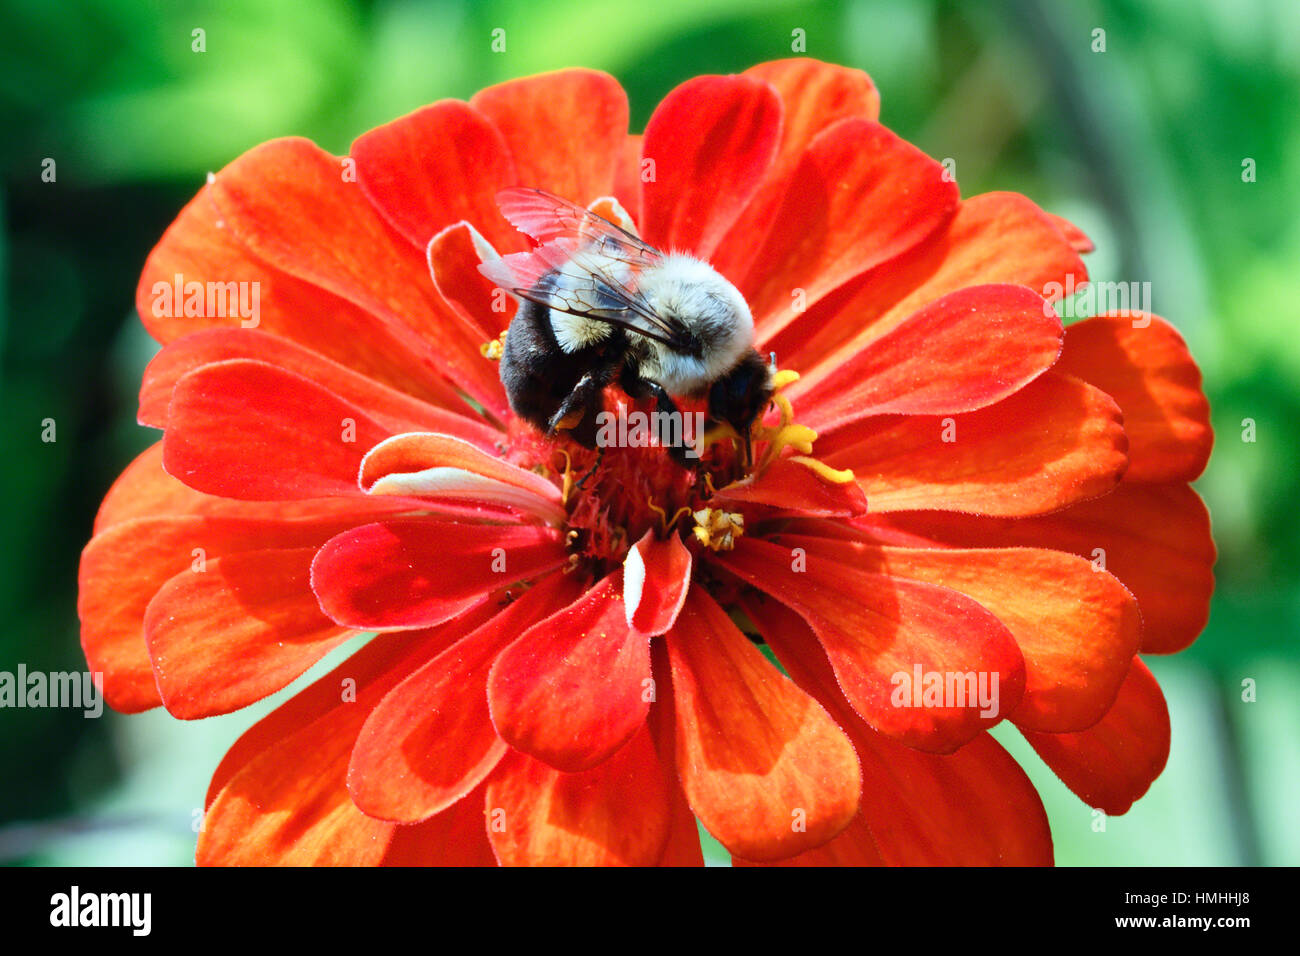 Close Up View of a Honey Bee Pollenating a Red Zinnia Flower - Stock Image